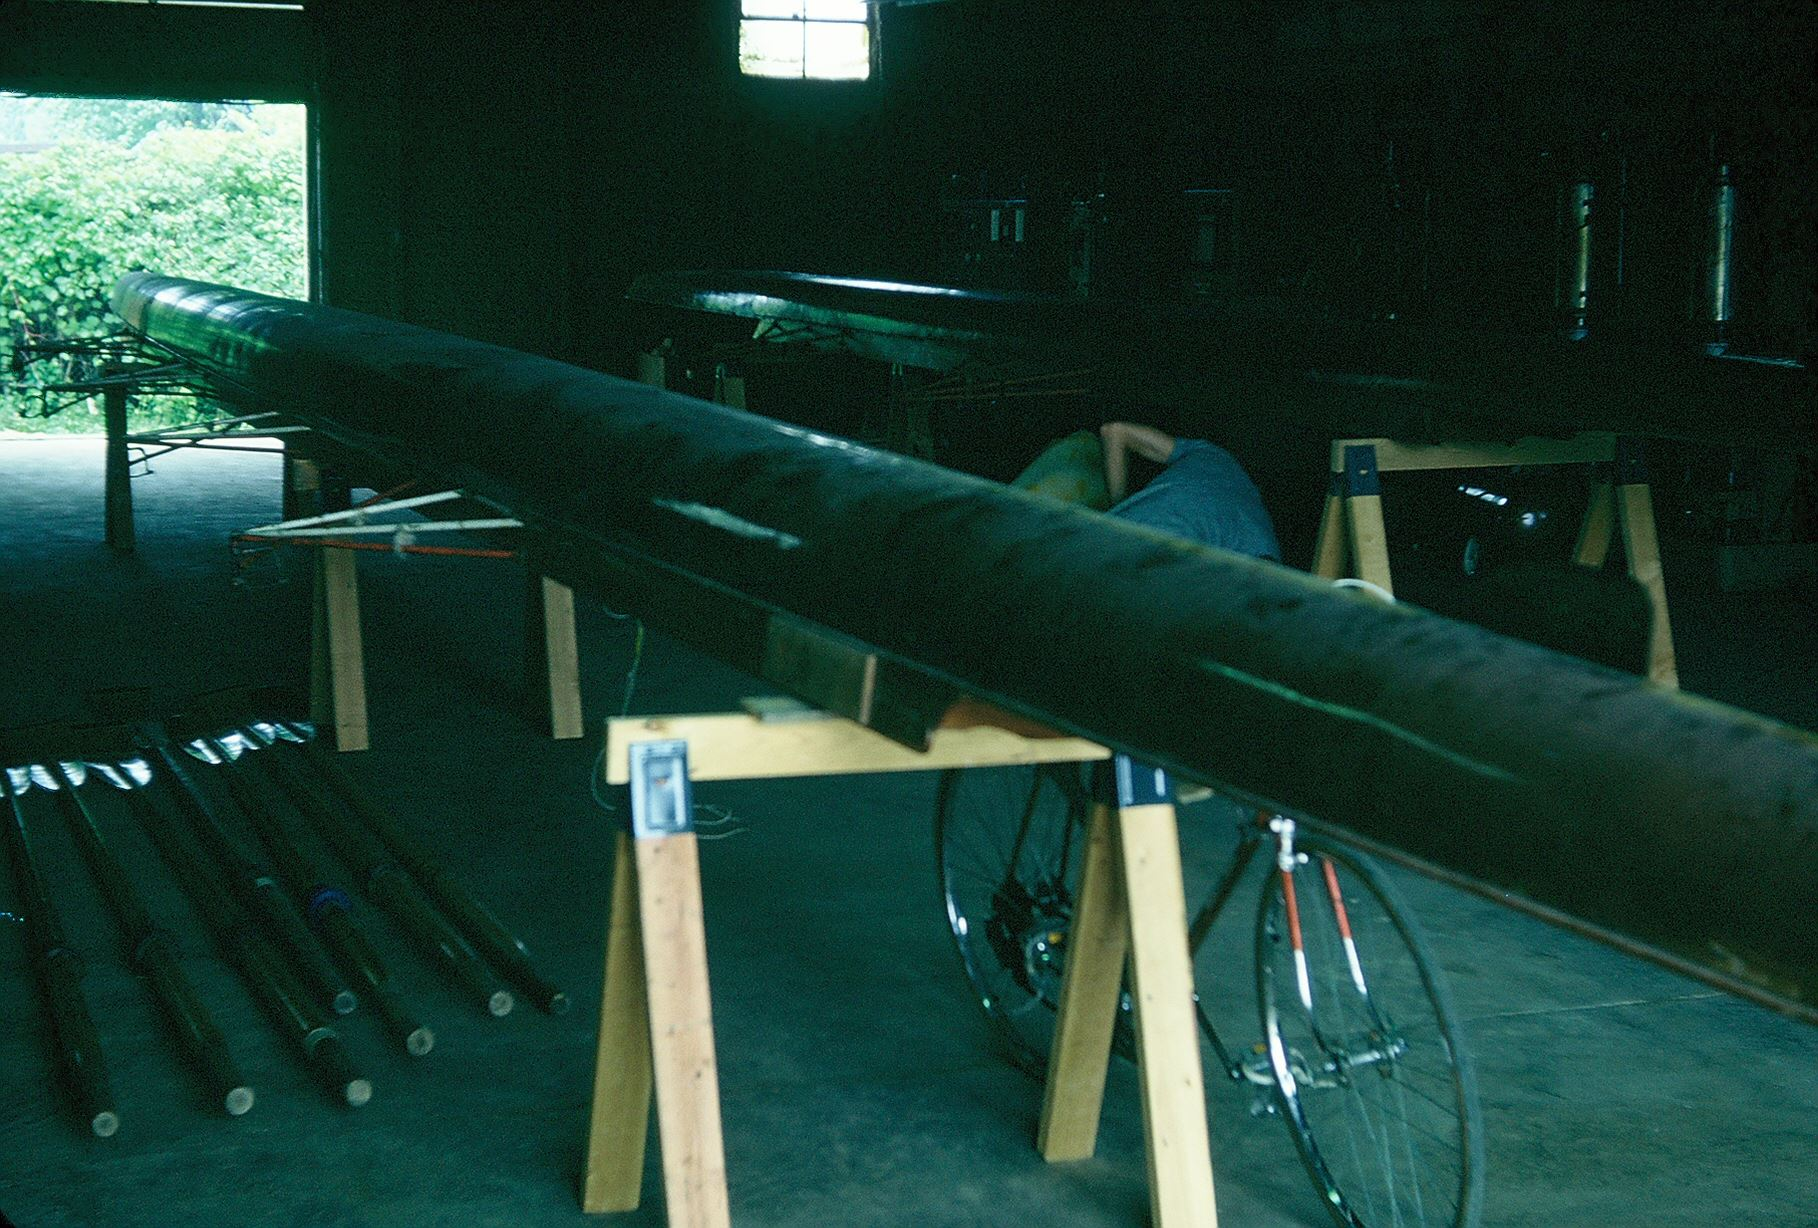 The club's first set of equipment on sawhorses in the warehouse — boats purchased from Windsor Boat Club, oars from Michigan State University. June 1976.